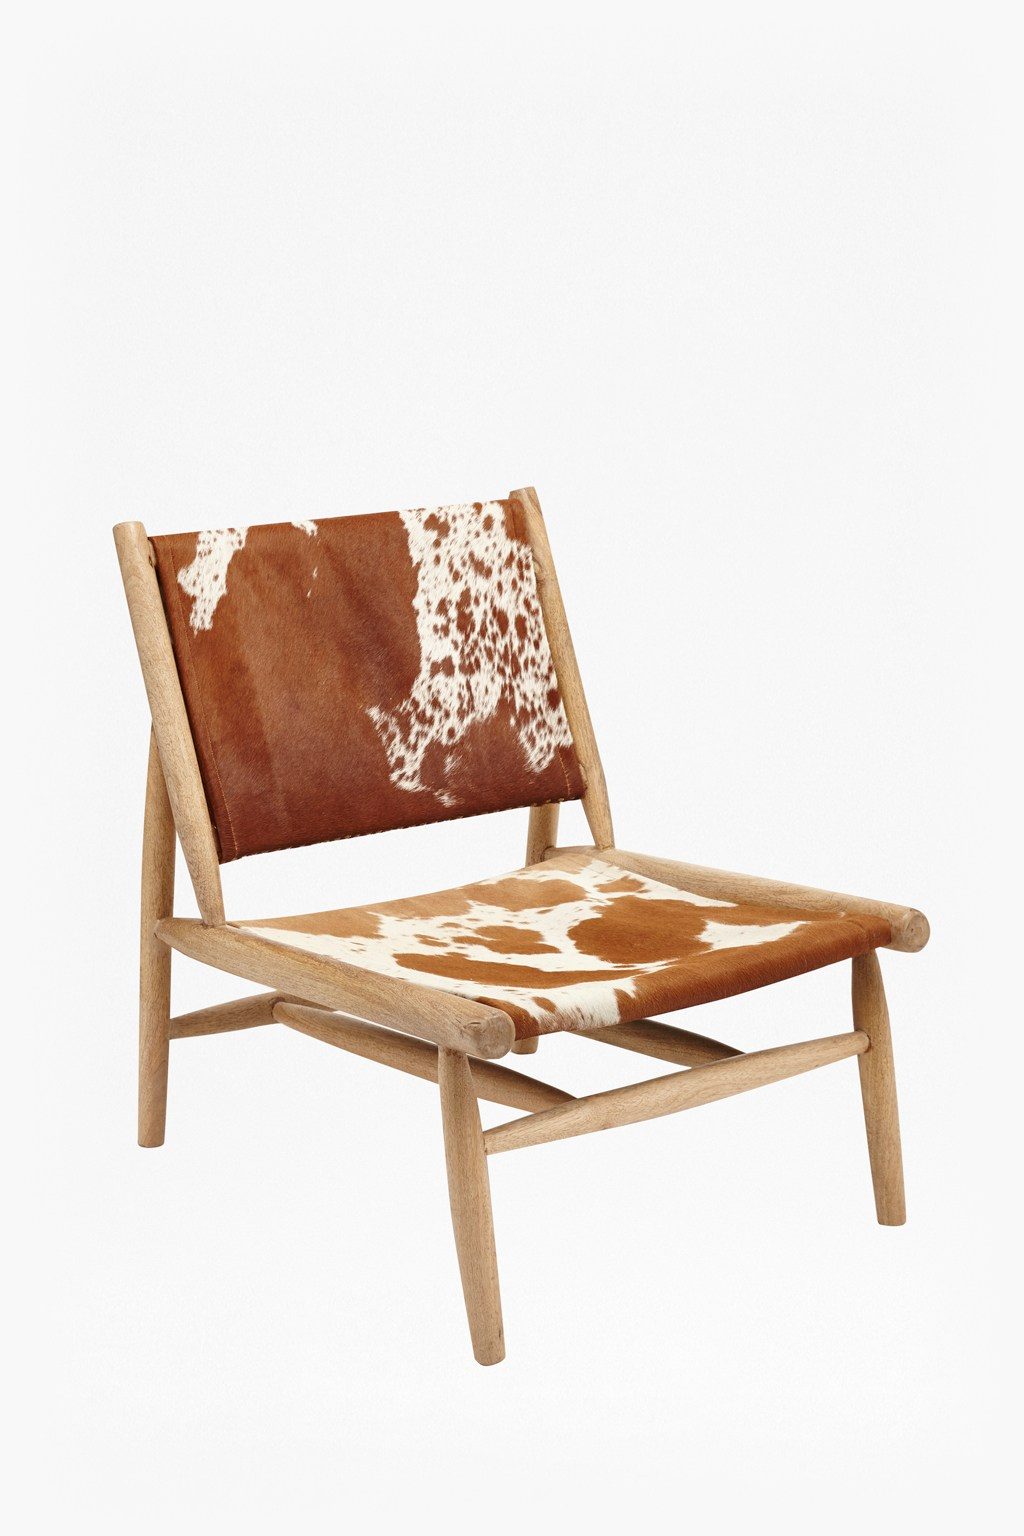 Charmant Cowhide Leather Chair. Loading Images.